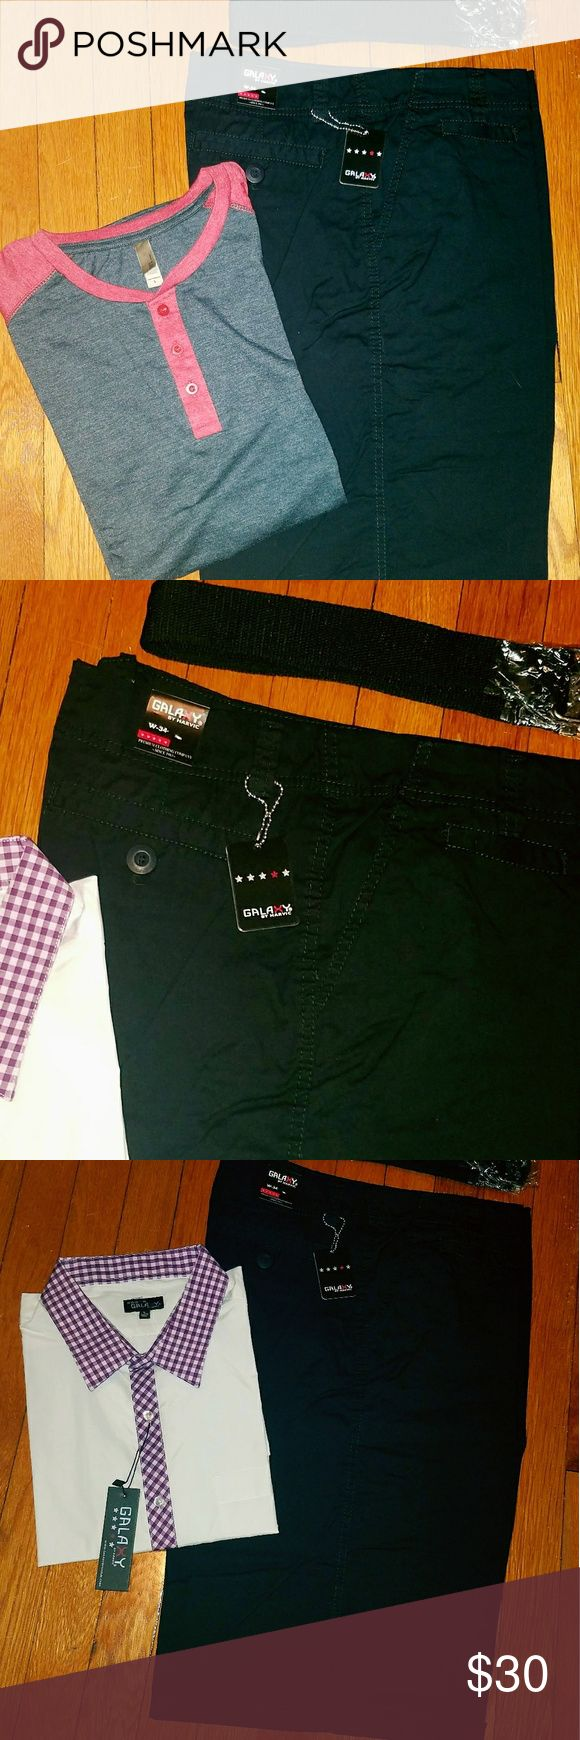 Men's black shorts Brand new.  Size 34 waist.  Comes with fabric belt. Galaxy Shorts Flat Front